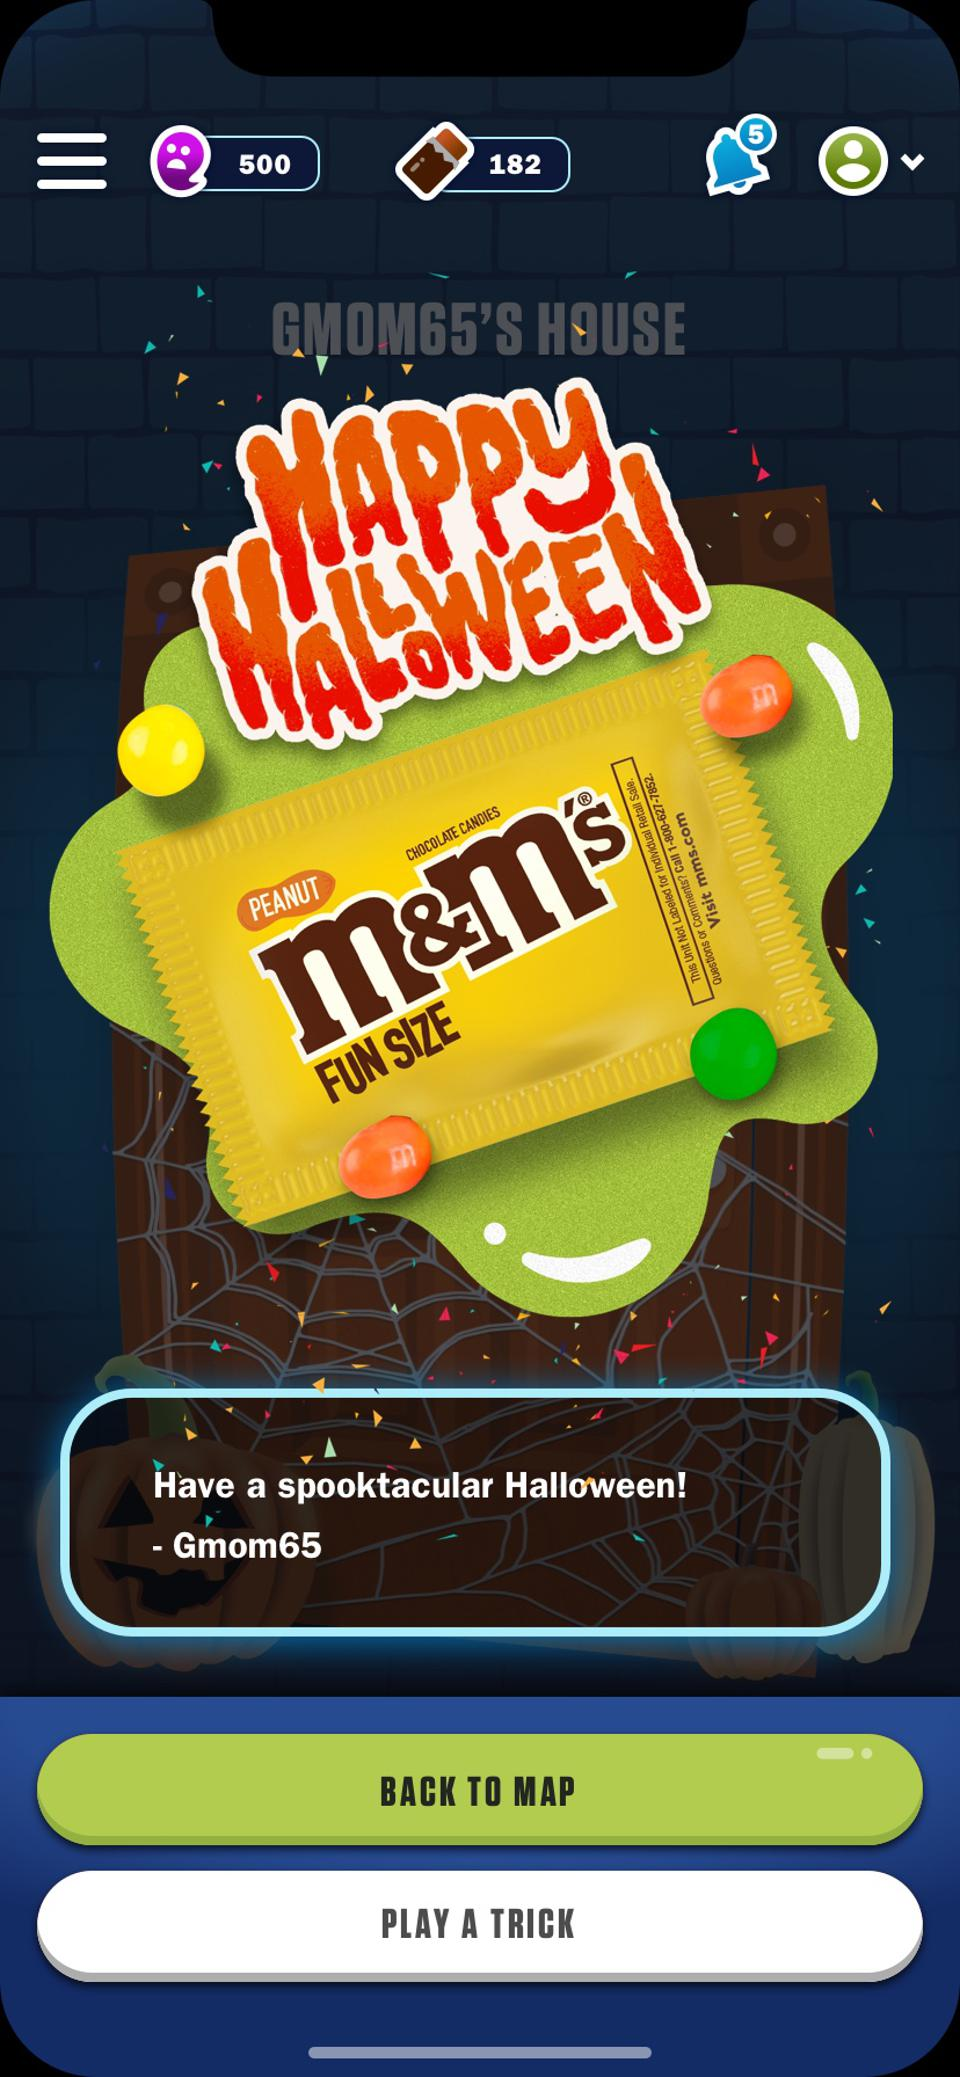 Mars Wrigley will launch Treat Town on Halloween this year.